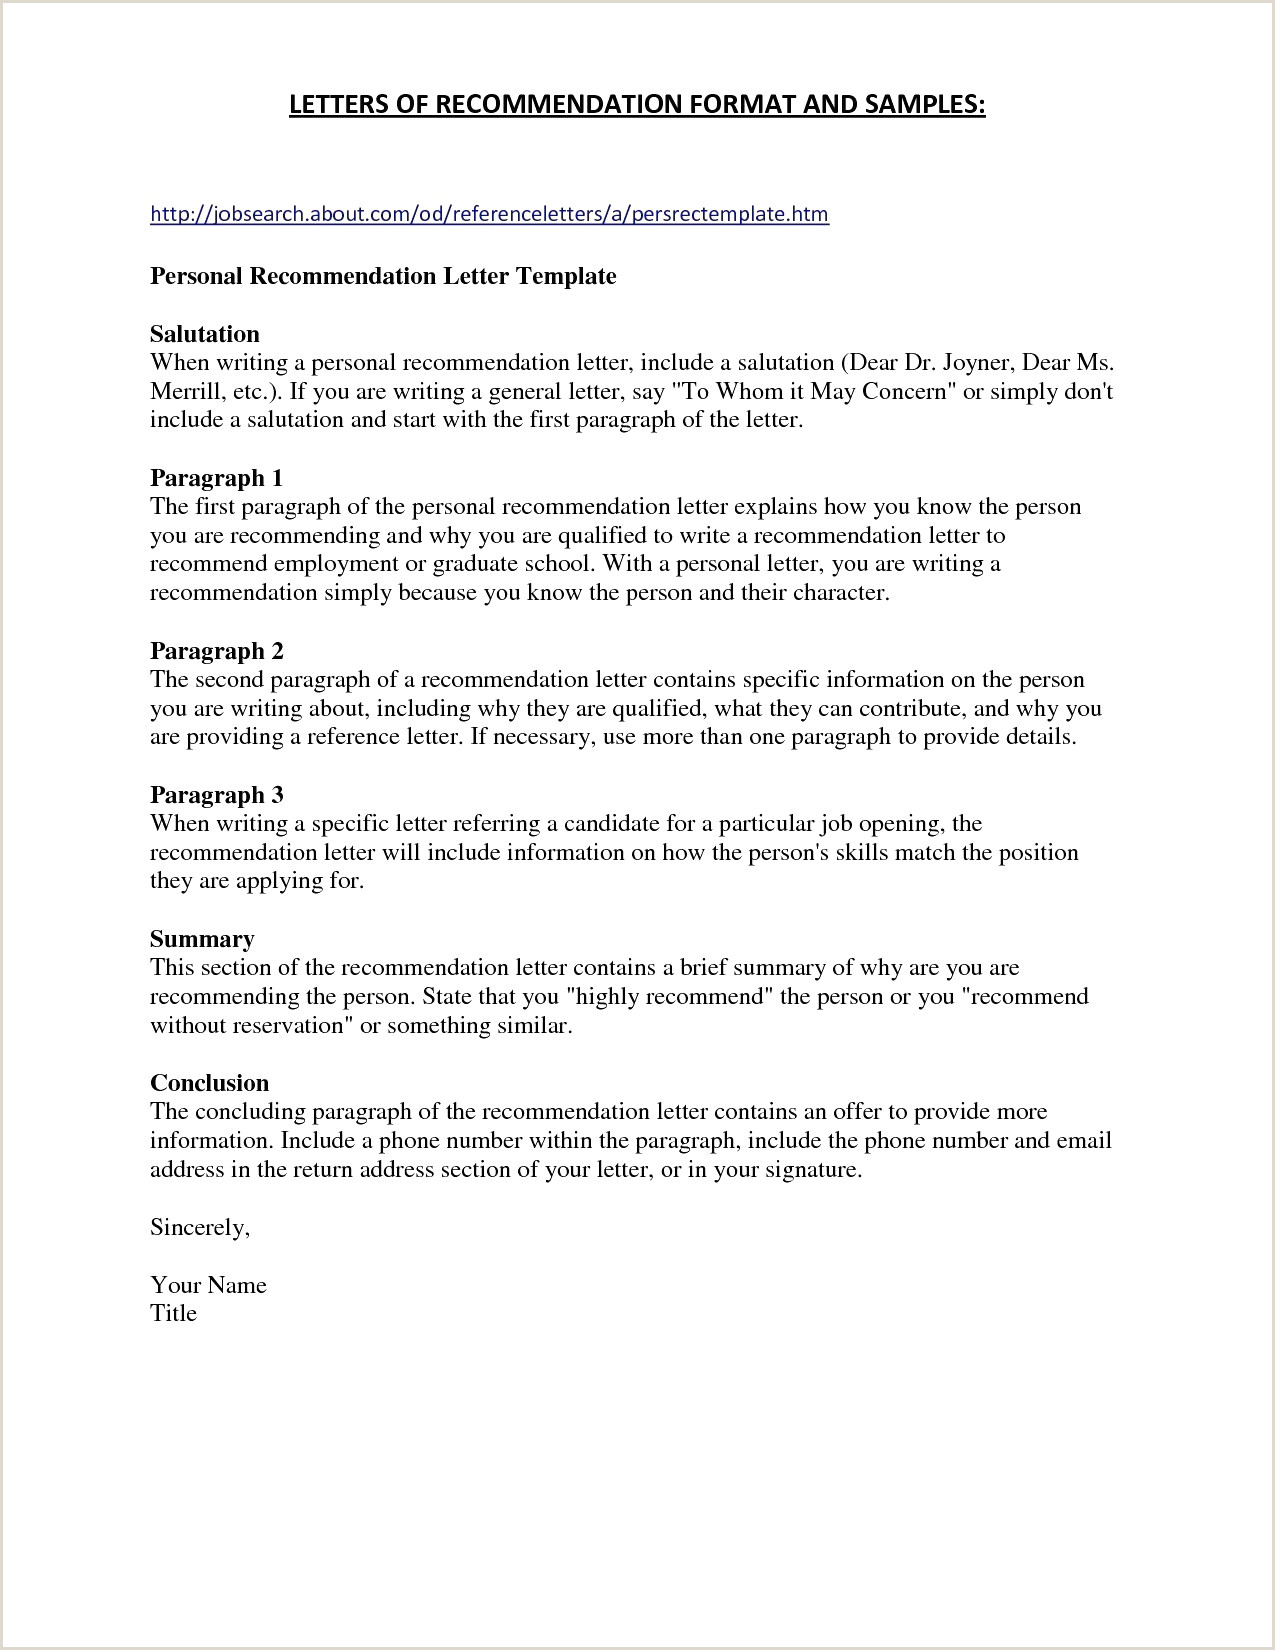 Resume format for Job Hd Pic 24 Luxe Stock De Resume Template In Word